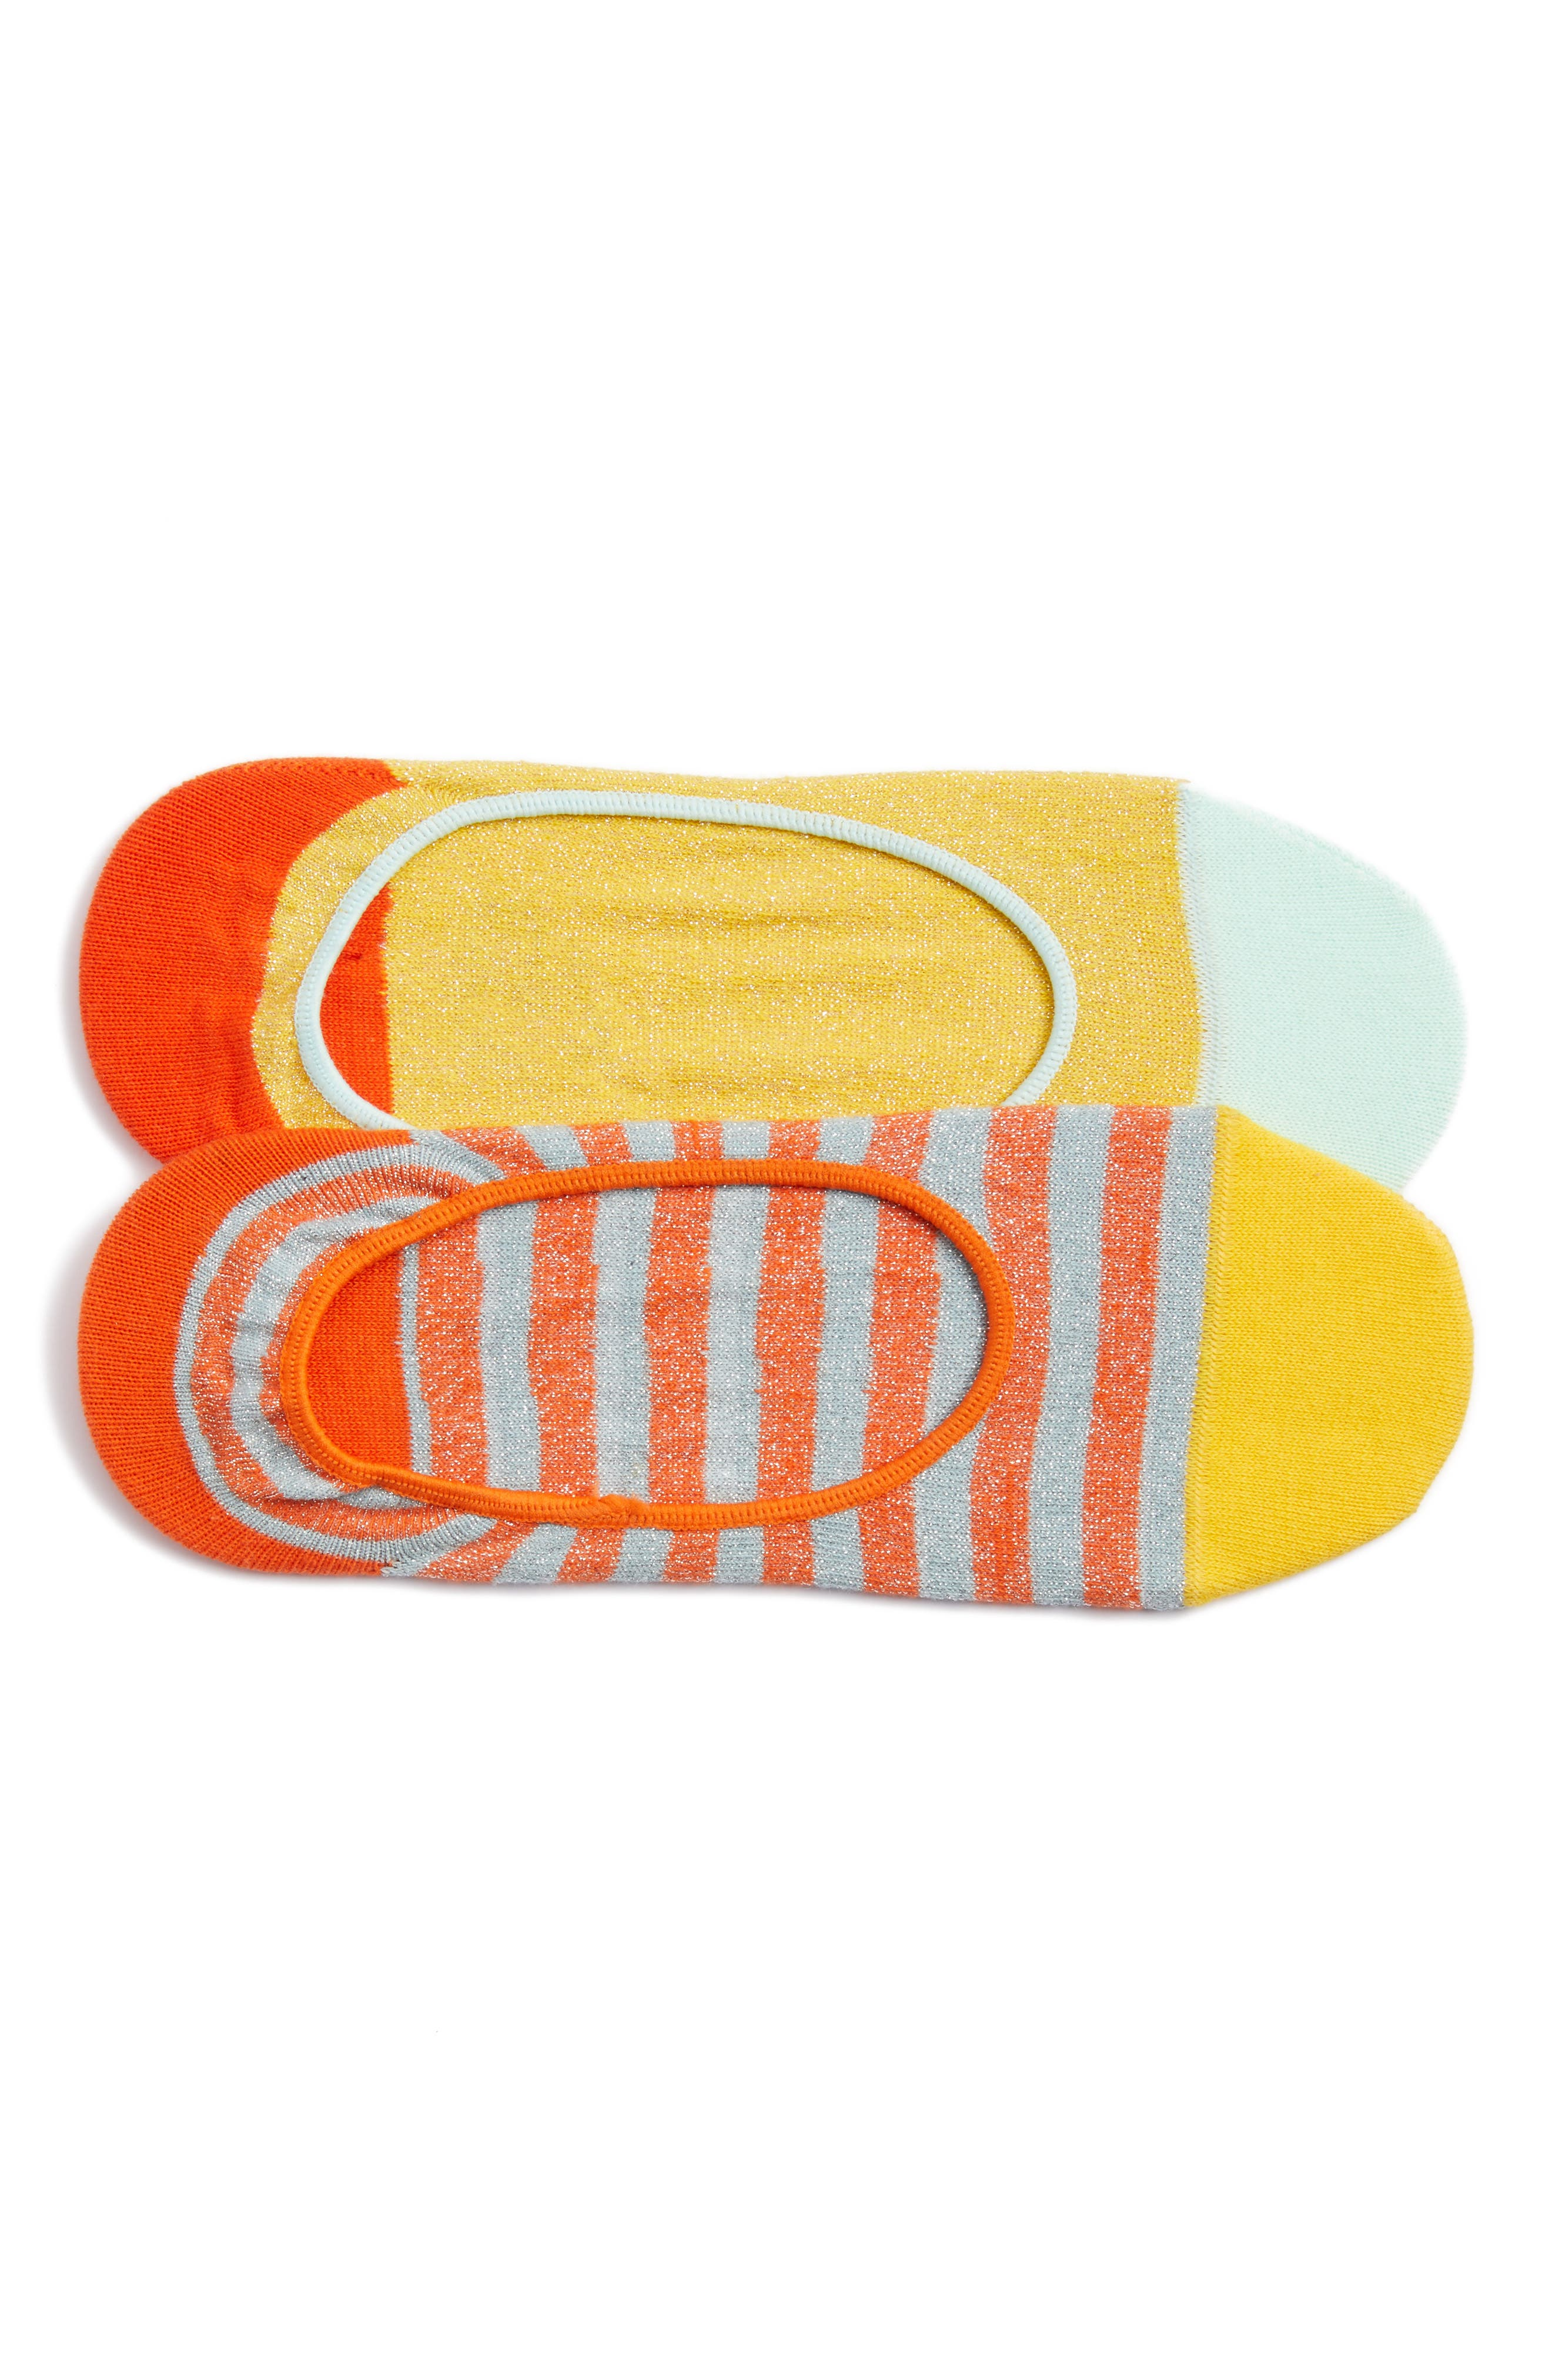 2-Pack Claudia No-Show Socks,                         Main,                         color, Orange